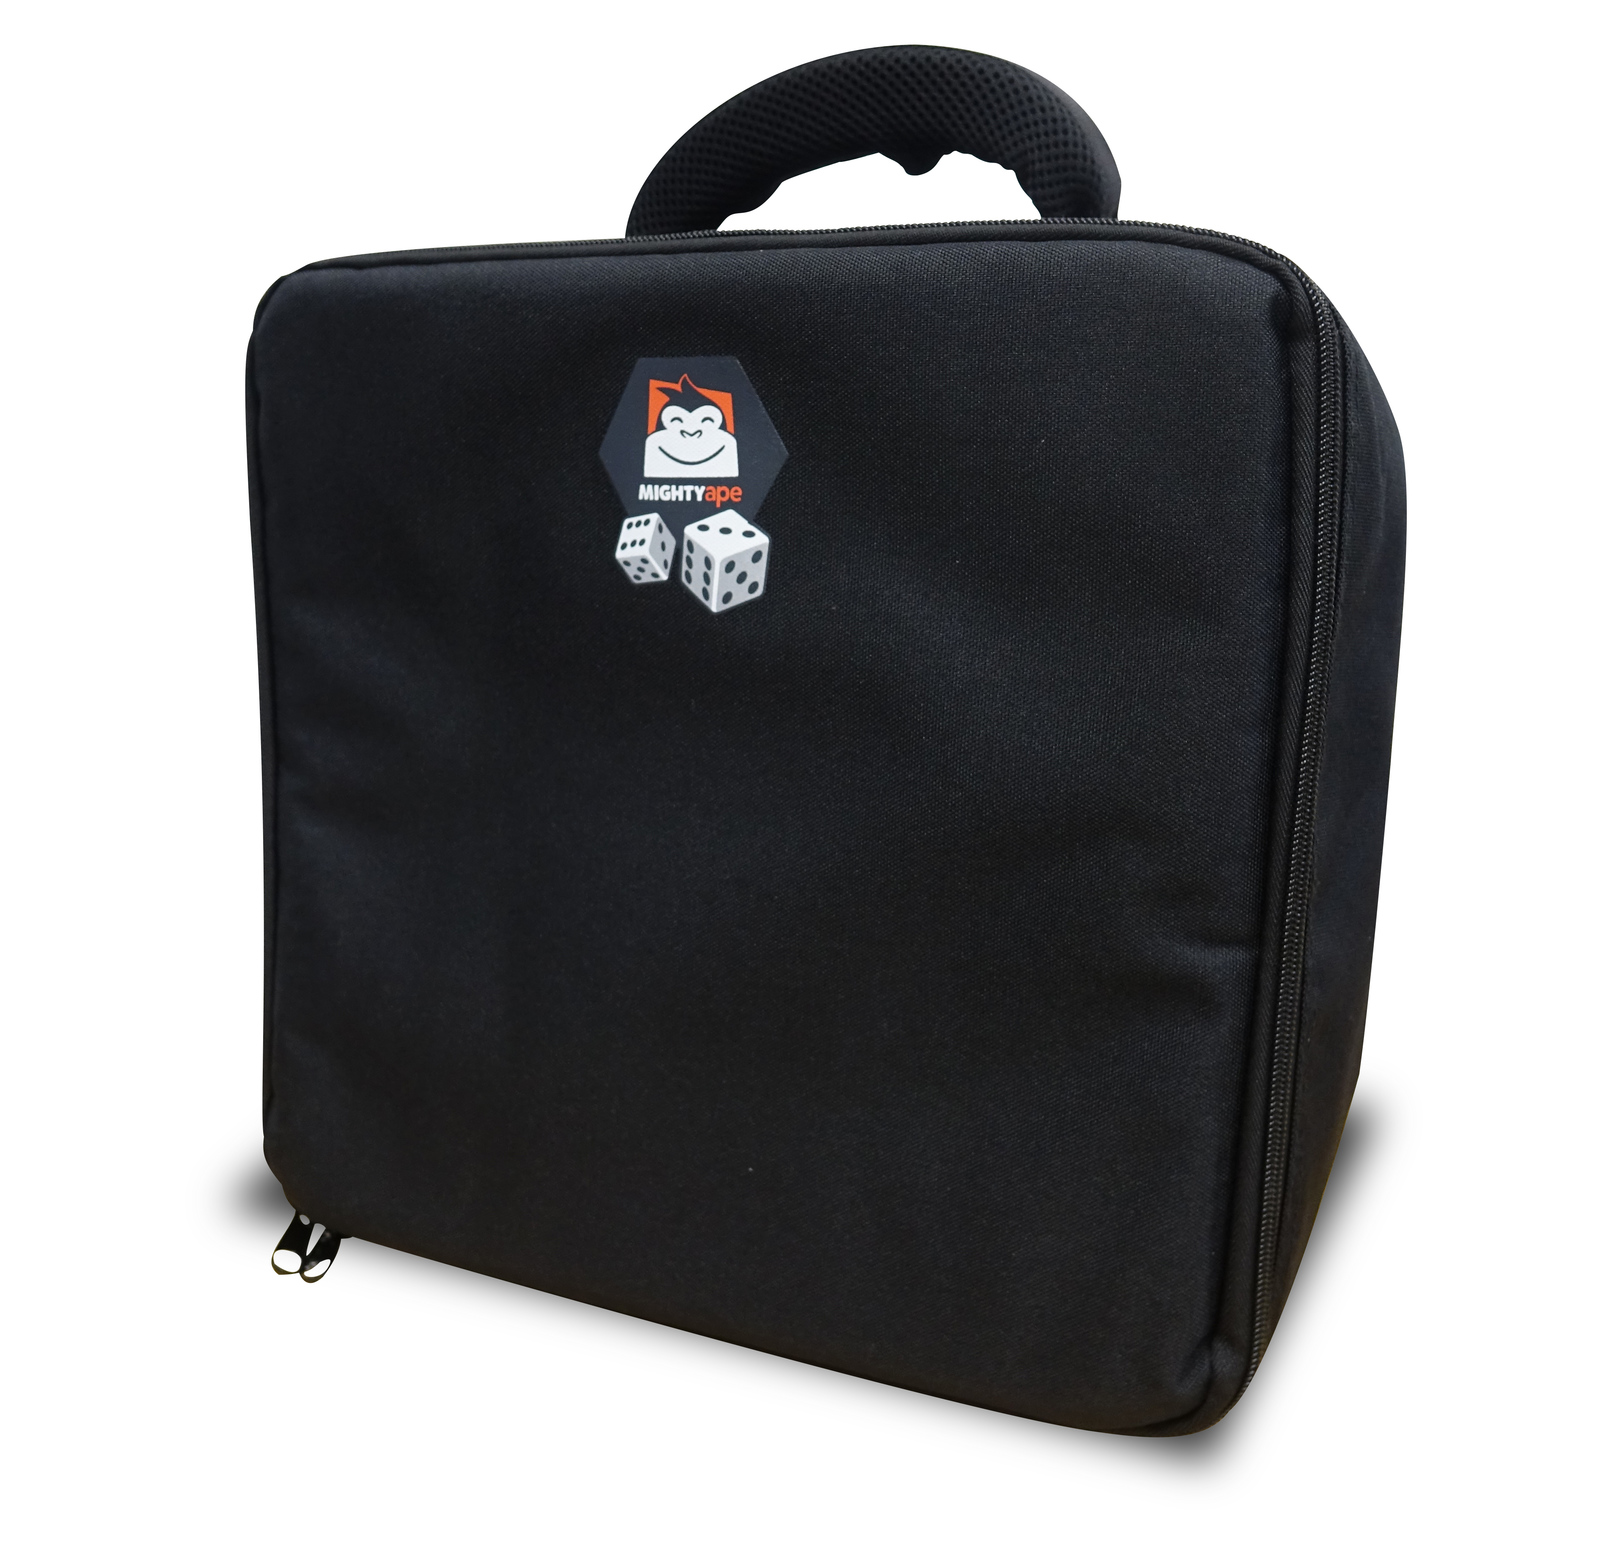 Mighty Ape Board Game Bag - Small image